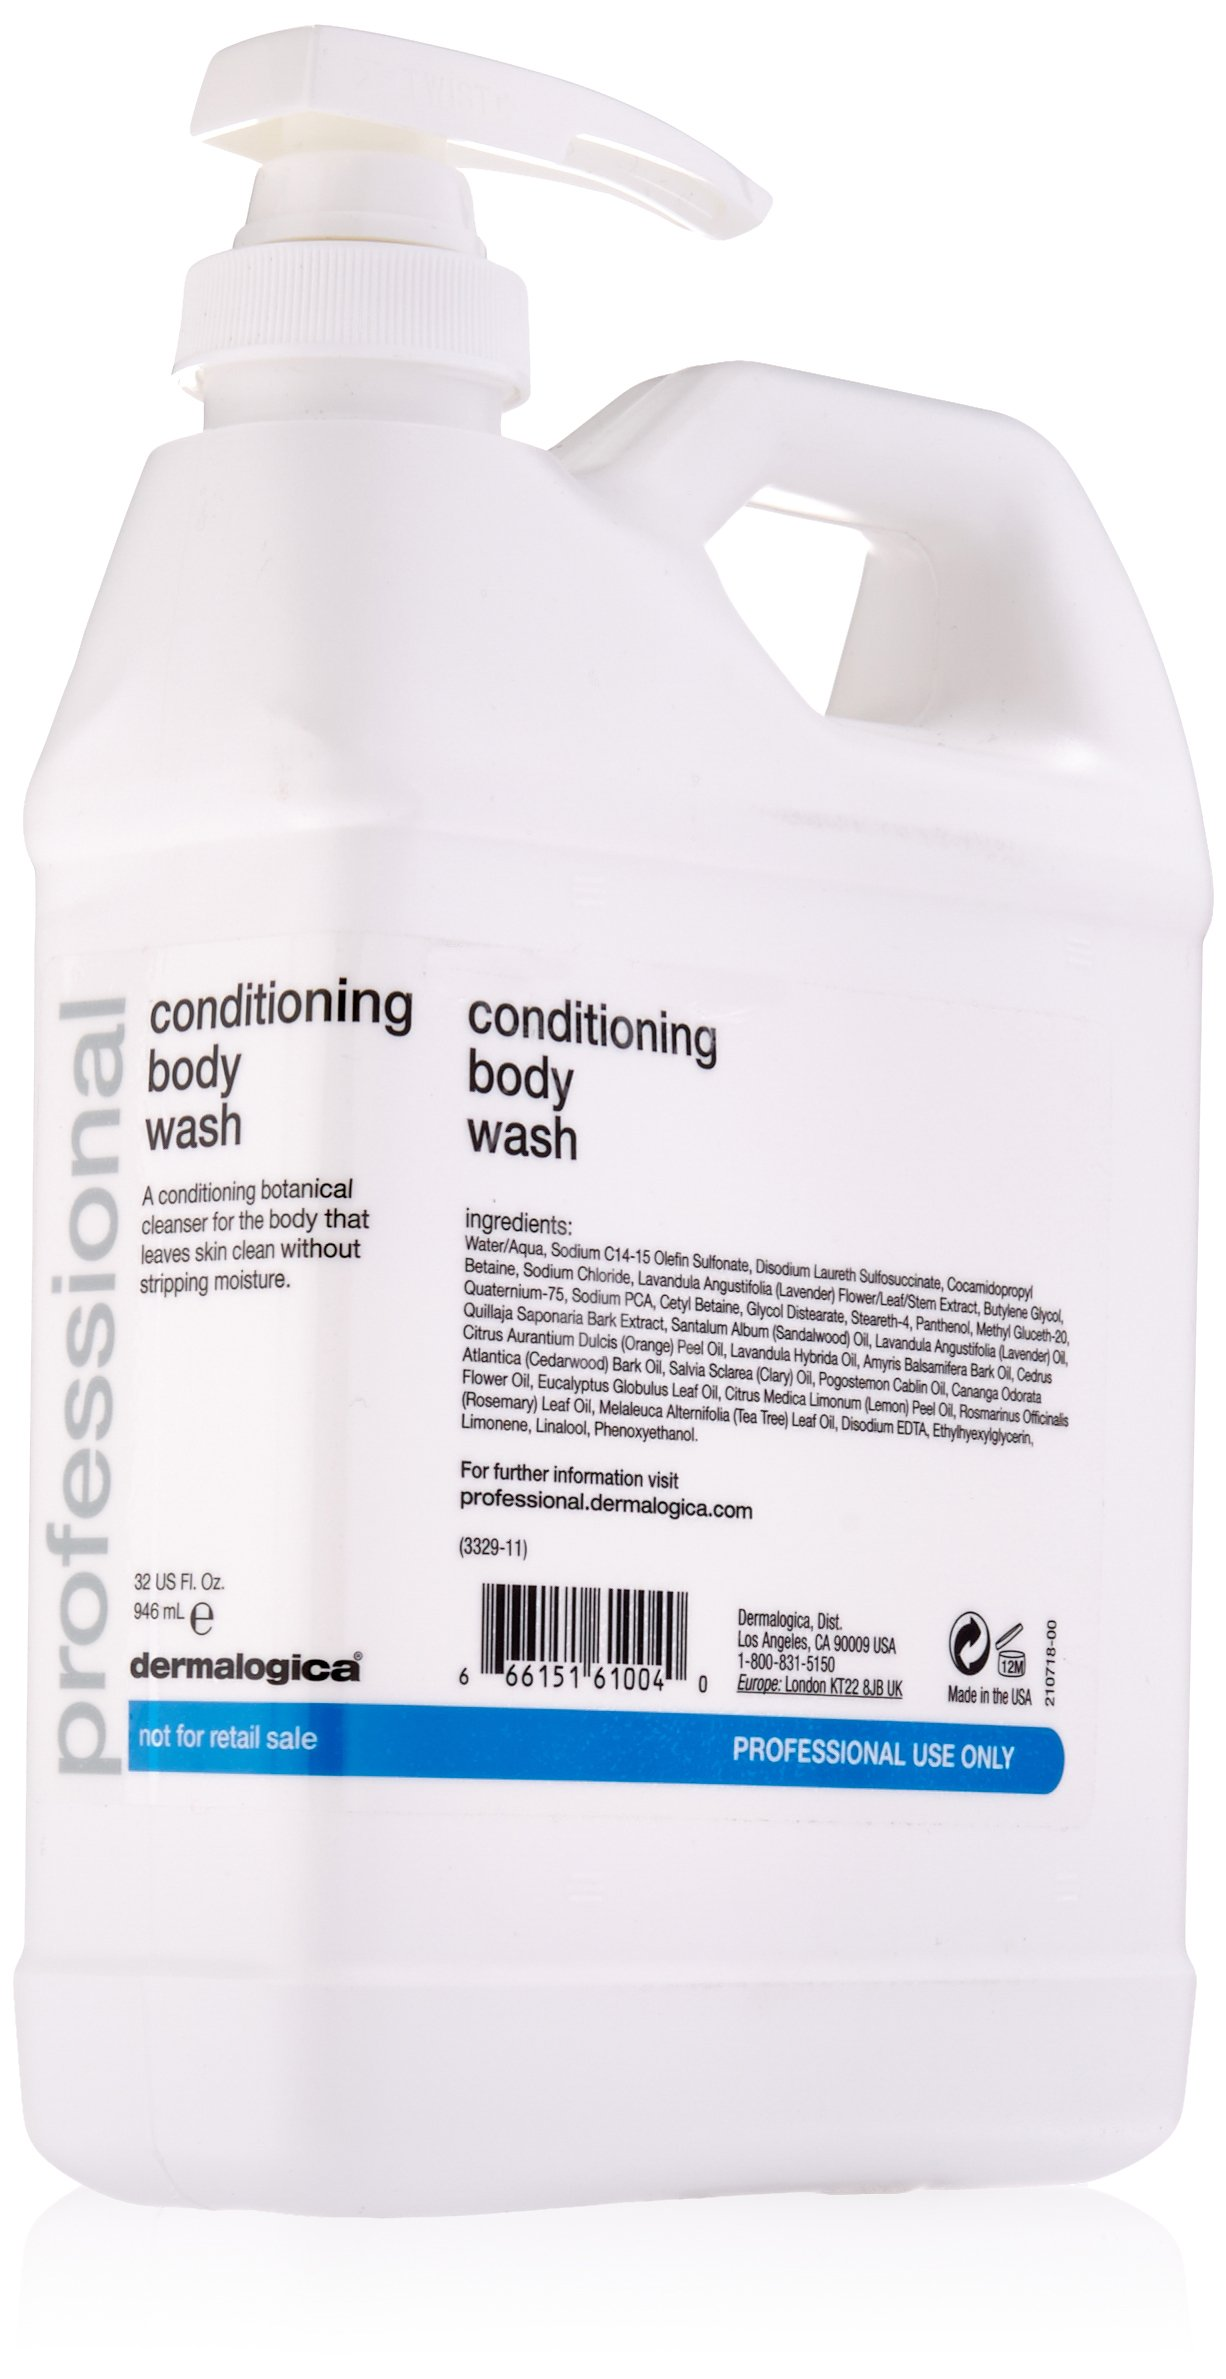 Dermalogica Conditioning Body Wash, 32 Fluid Ounce